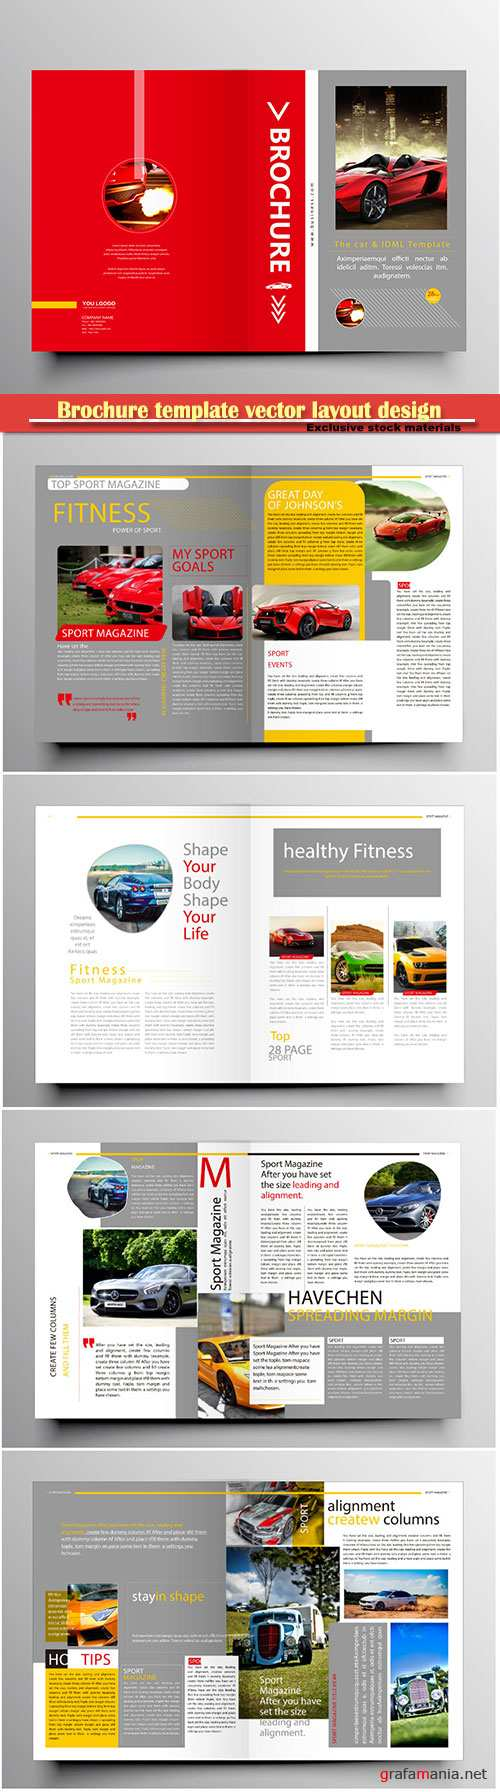 Brochure template vector layout design, corporate business annual report, magazine, flyer mockup # 186